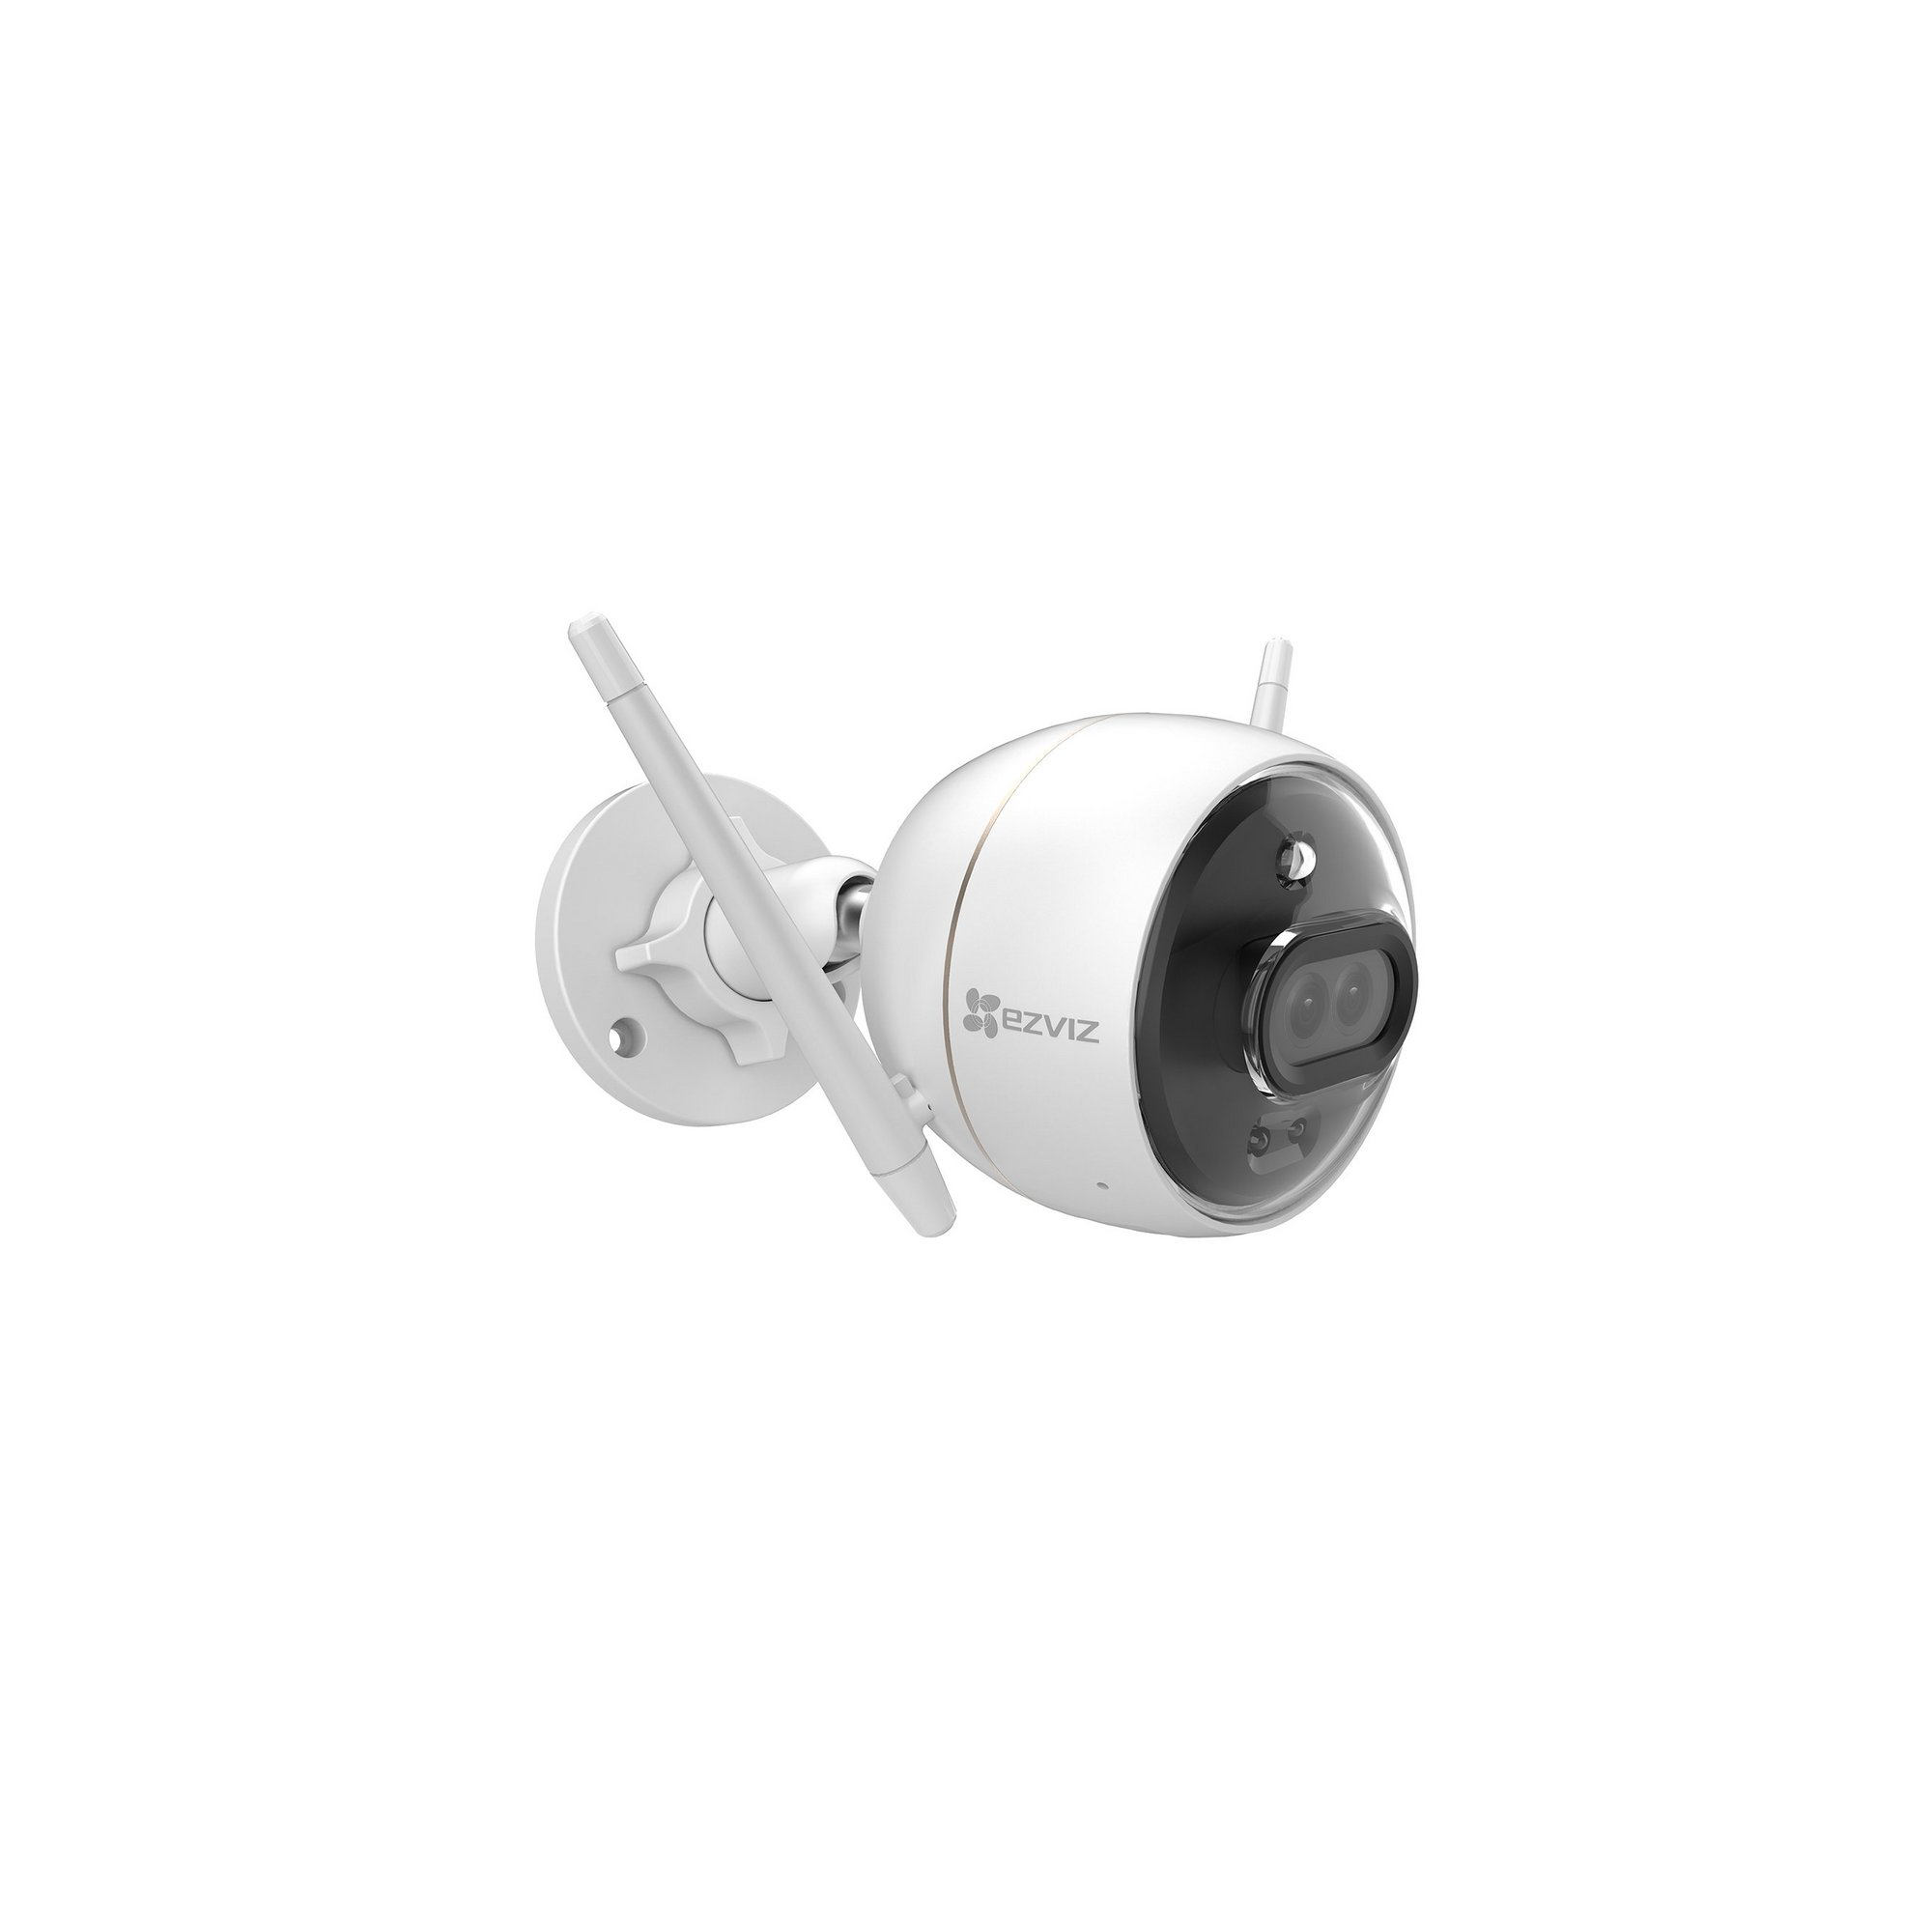 Image of EZVIZ C3X Dual-Lens Wi-Fi Camera with Built-In AI